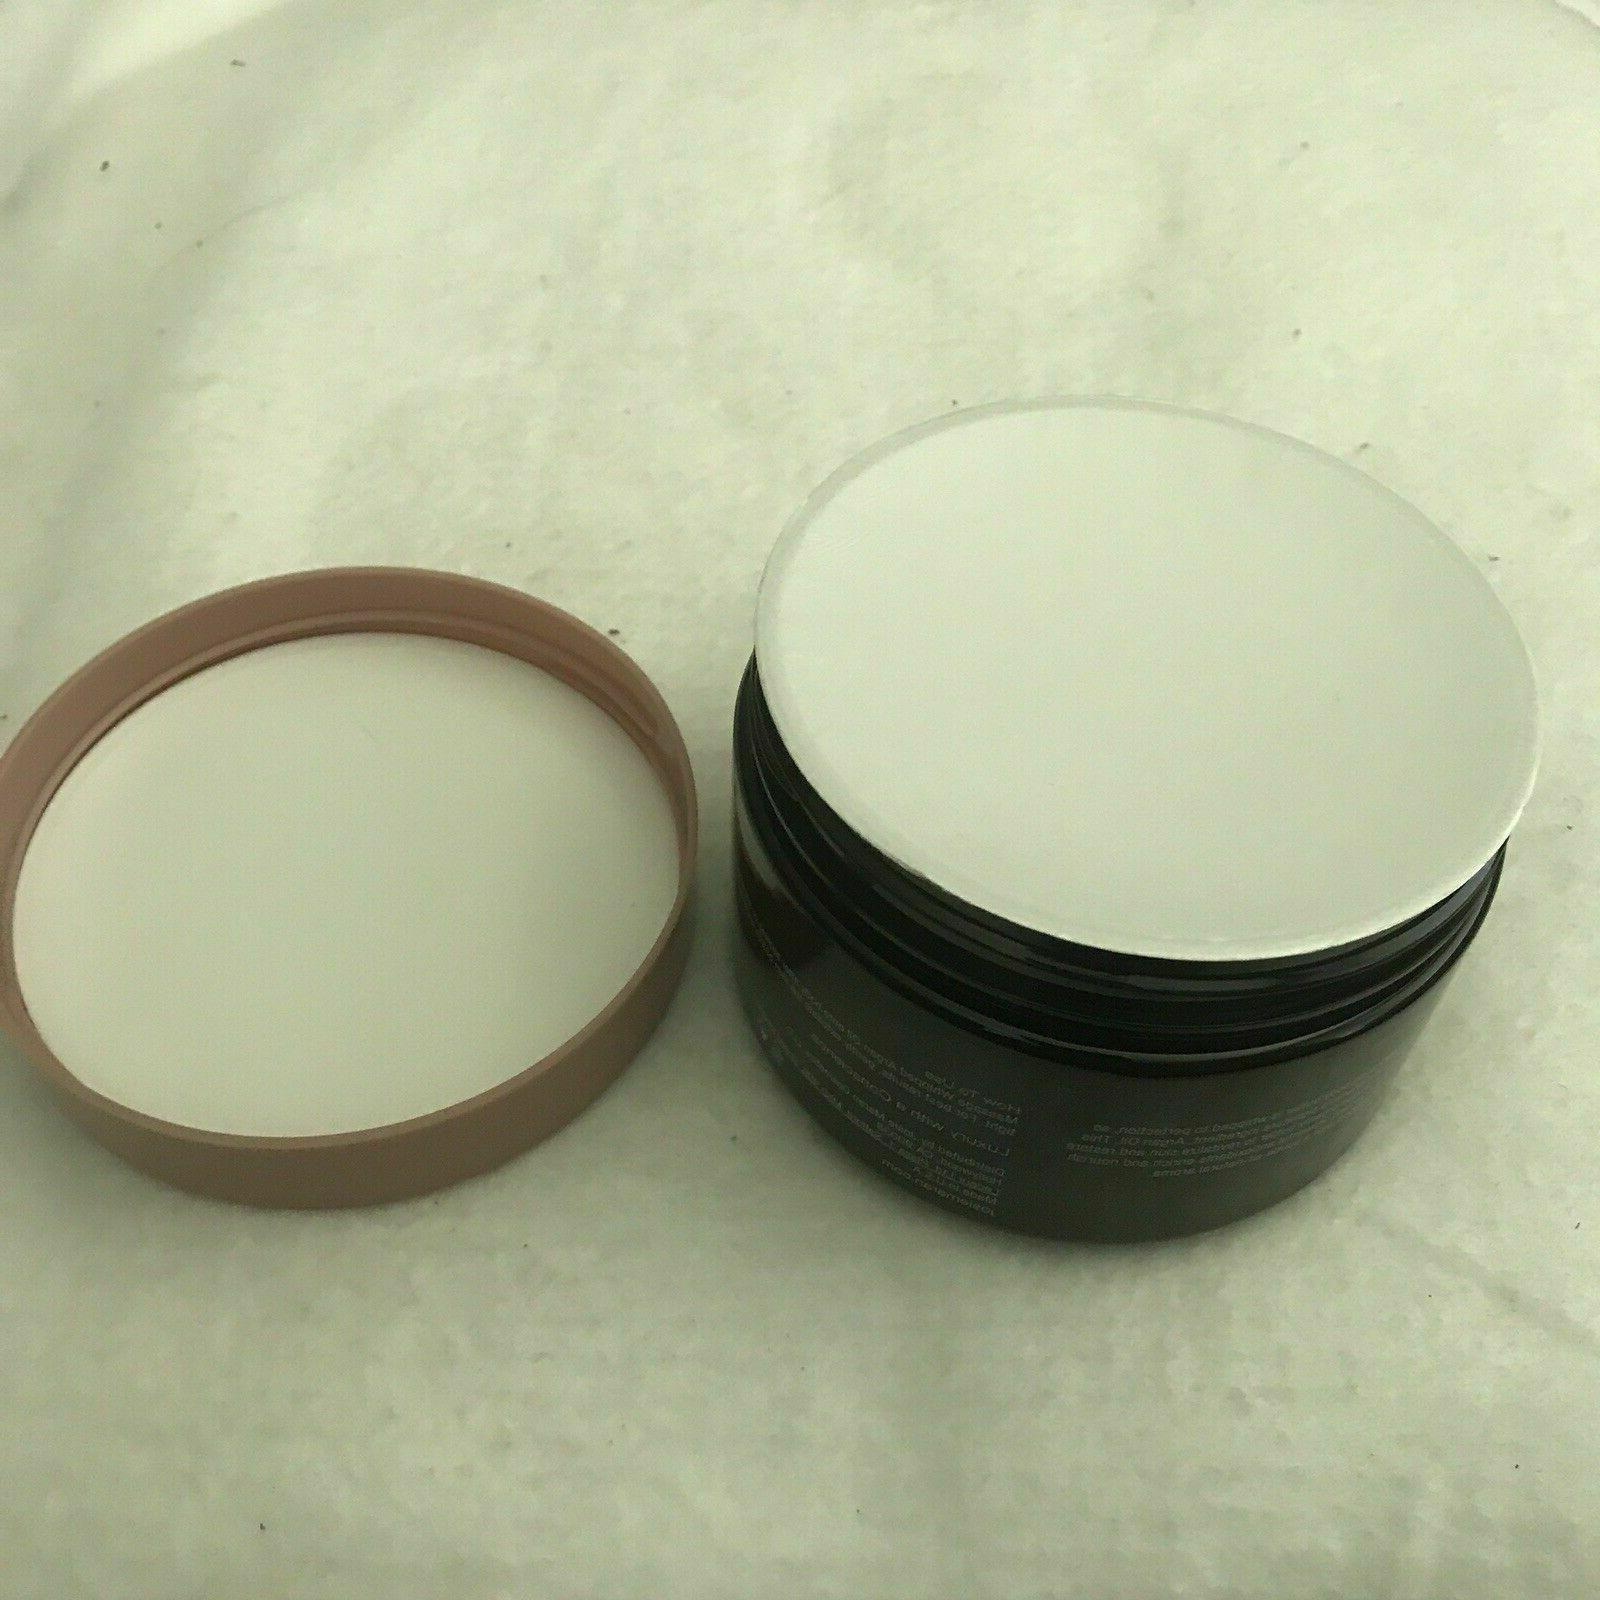 Creamy Whipped Oil Ship